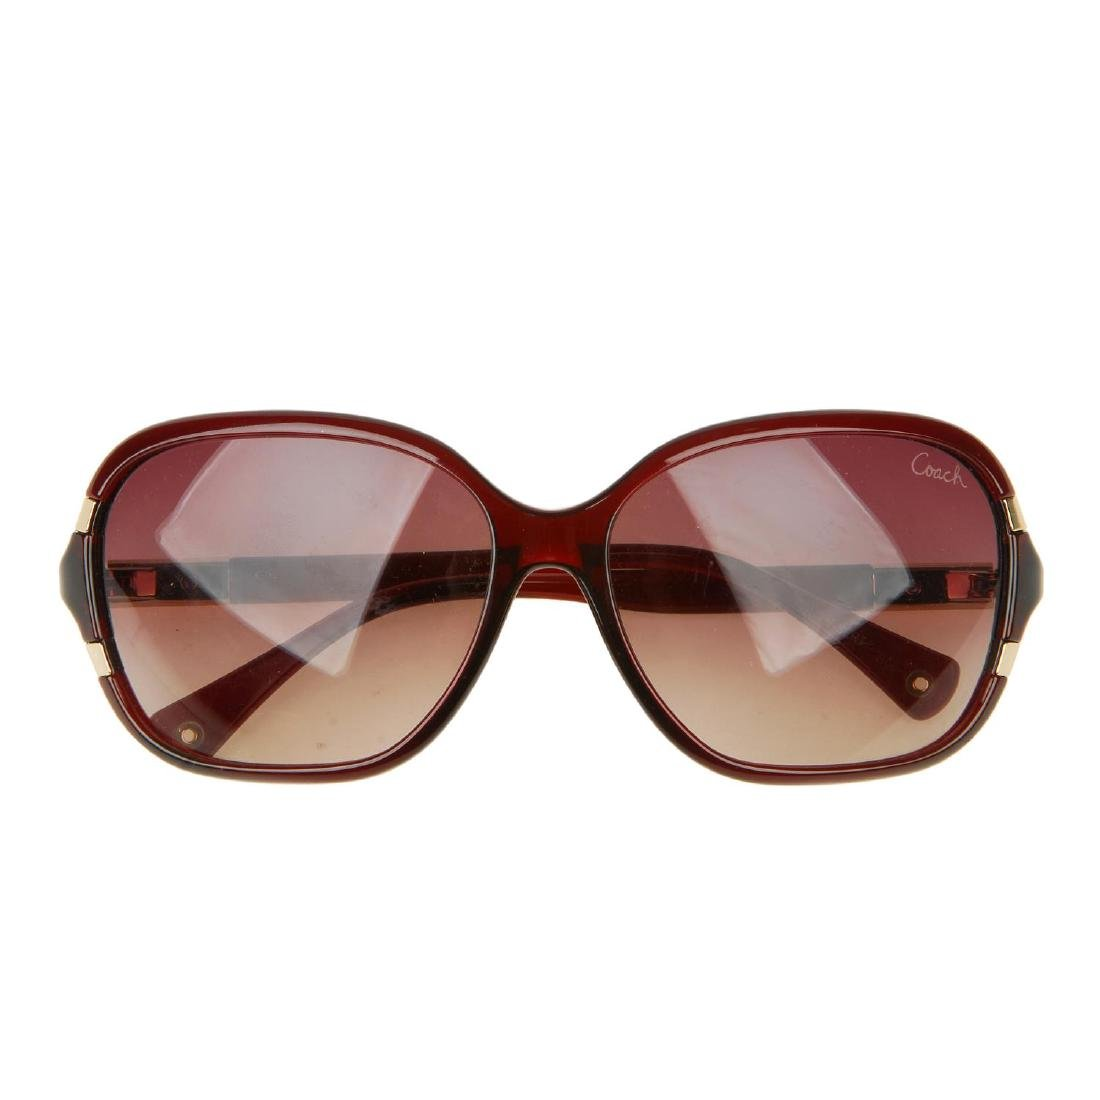 COACH - a pair of sunglasses. Featuring oversized brown